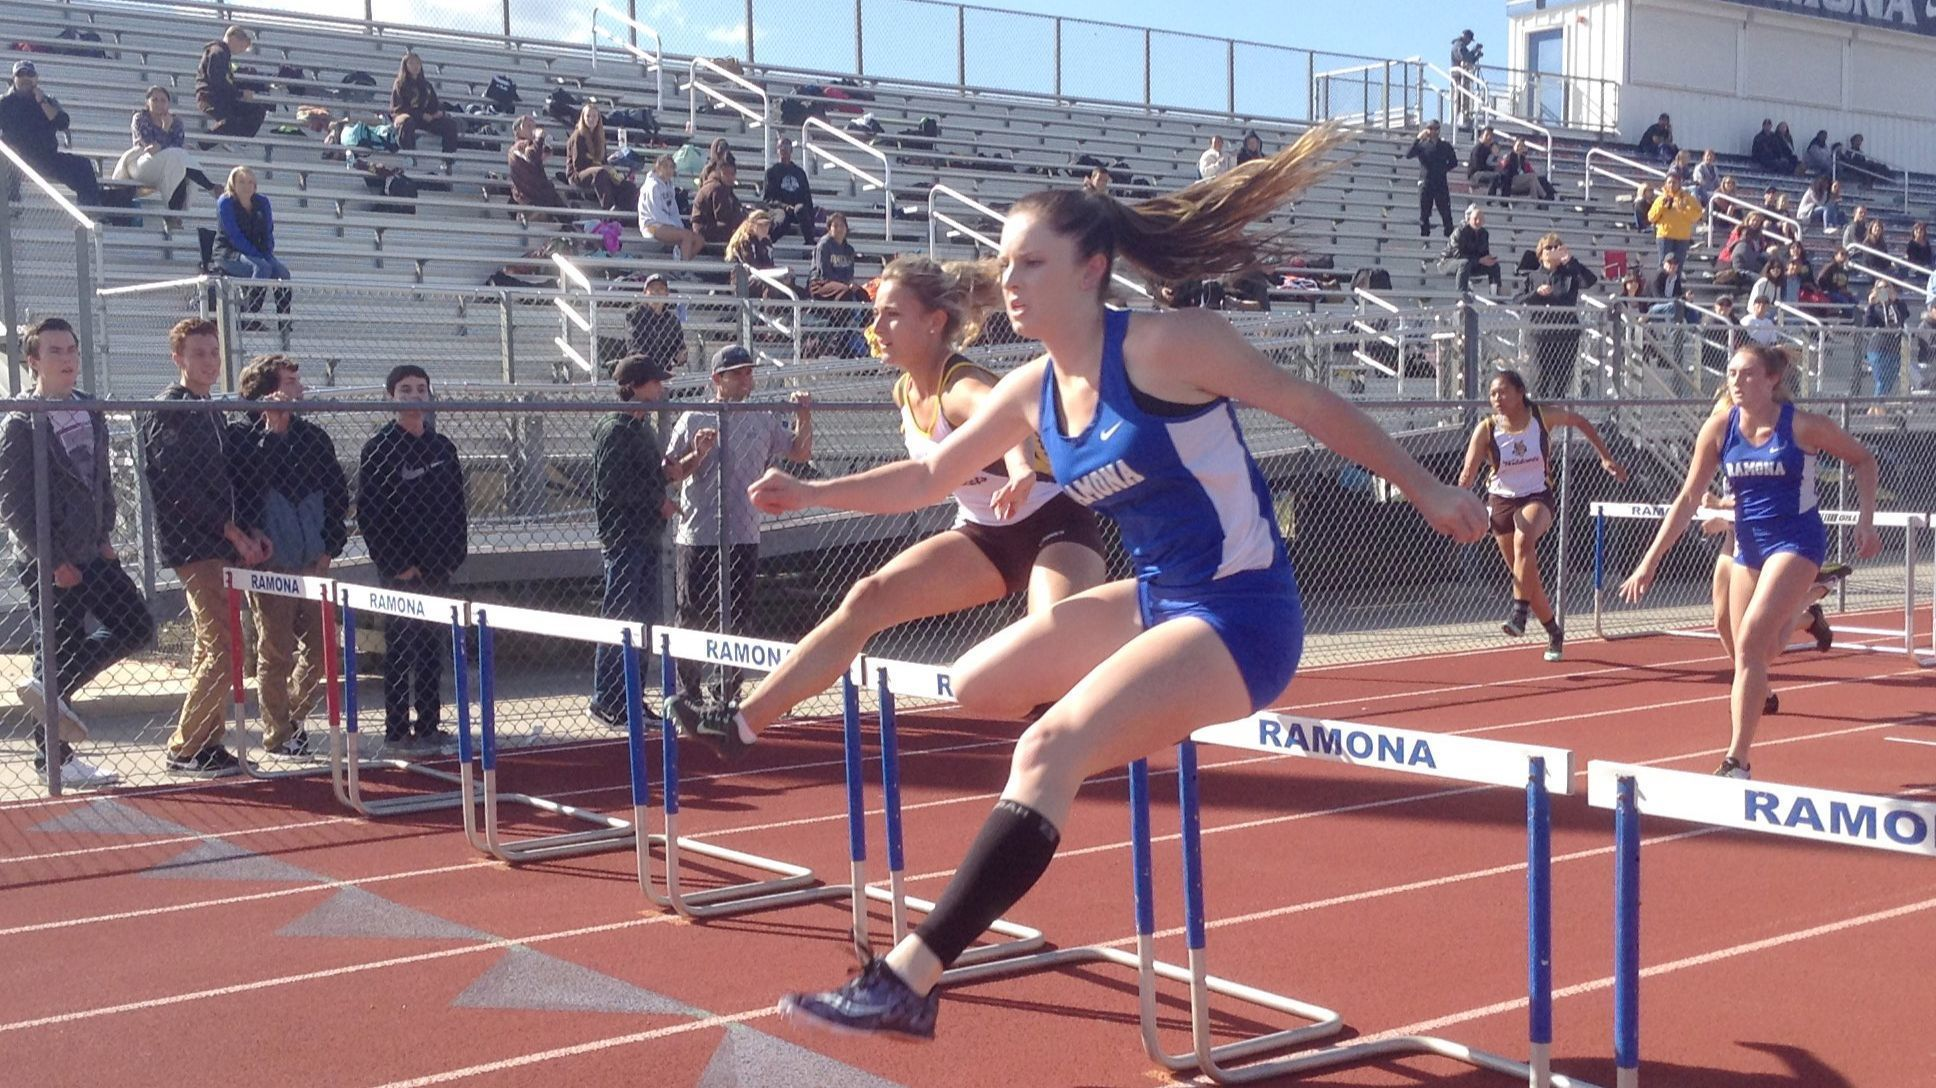 Morgann Wilson clears the last hurdle to win the 100 hurdles against El Camino in 16.37.